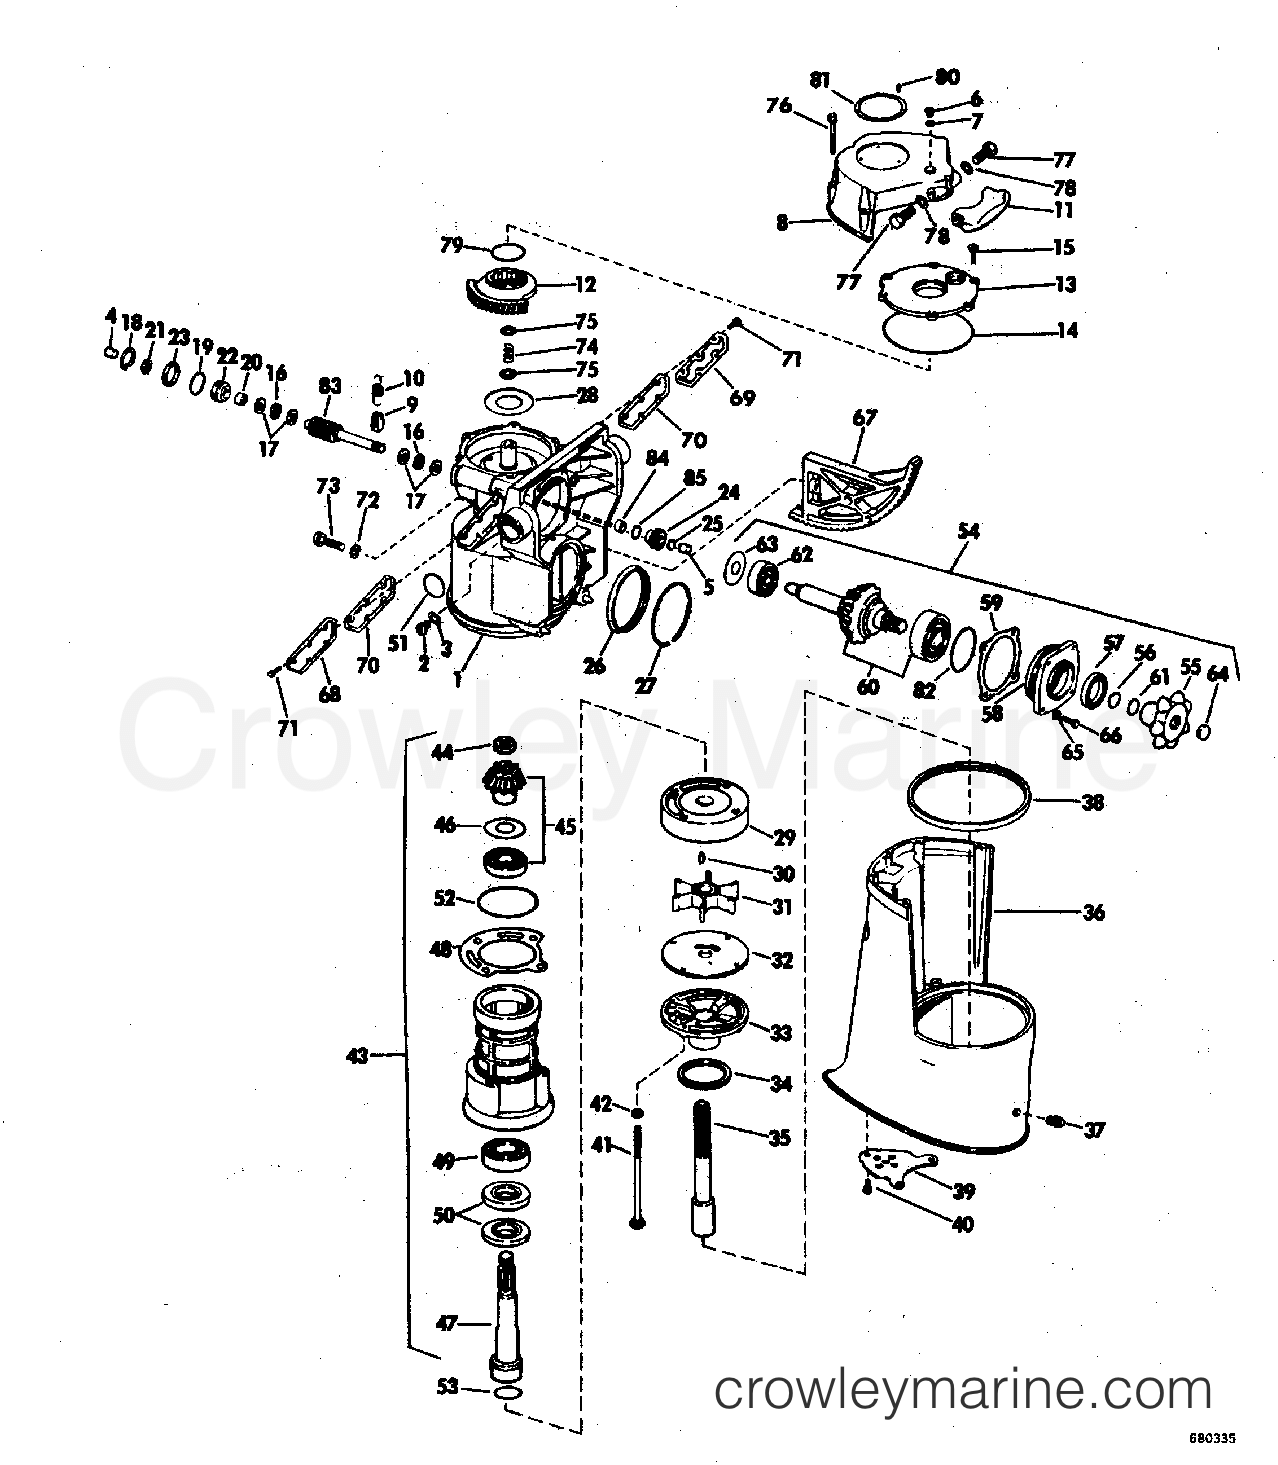 omc 5005801 ignition switch wiring diagram